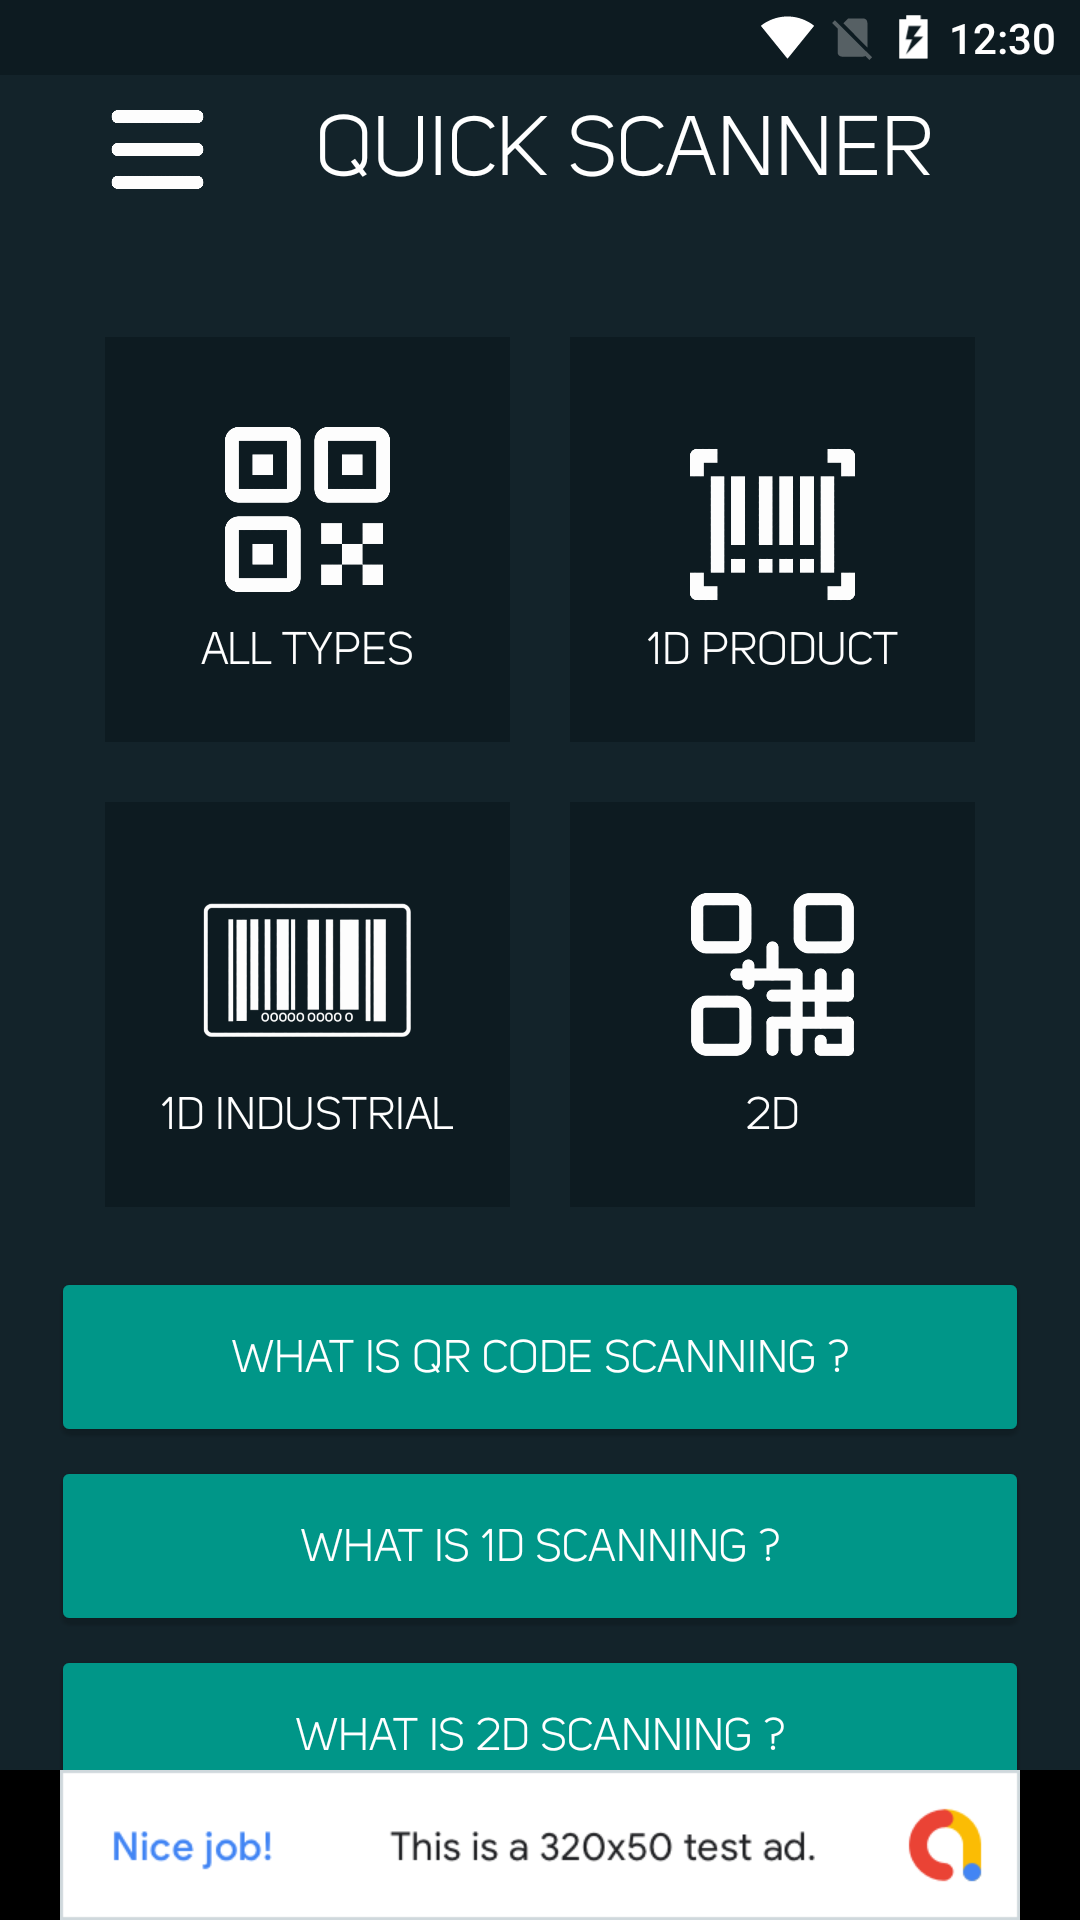 Quick Scanner QR Code & Barcode Scanner Android App